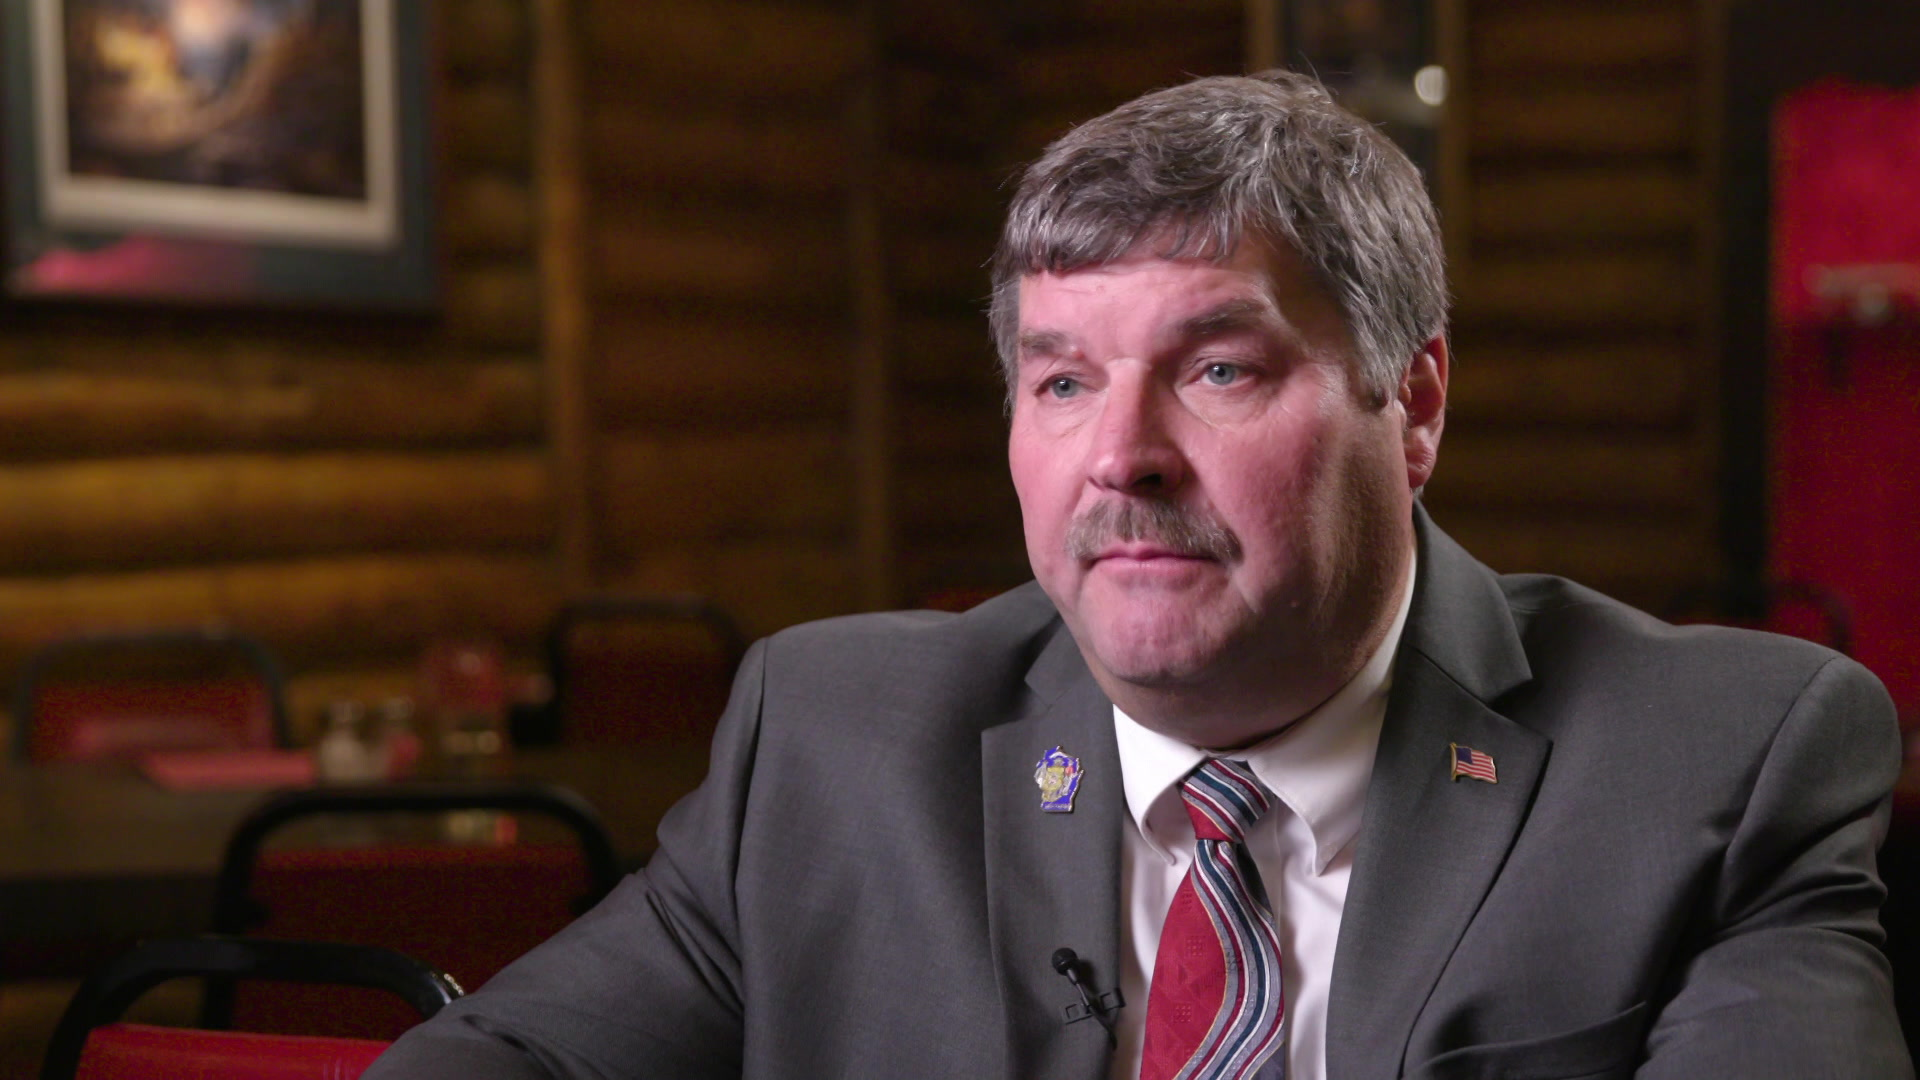 A portrait of Al Swearingen, wearing a suit with tables and a log-cabin style wall in the background.